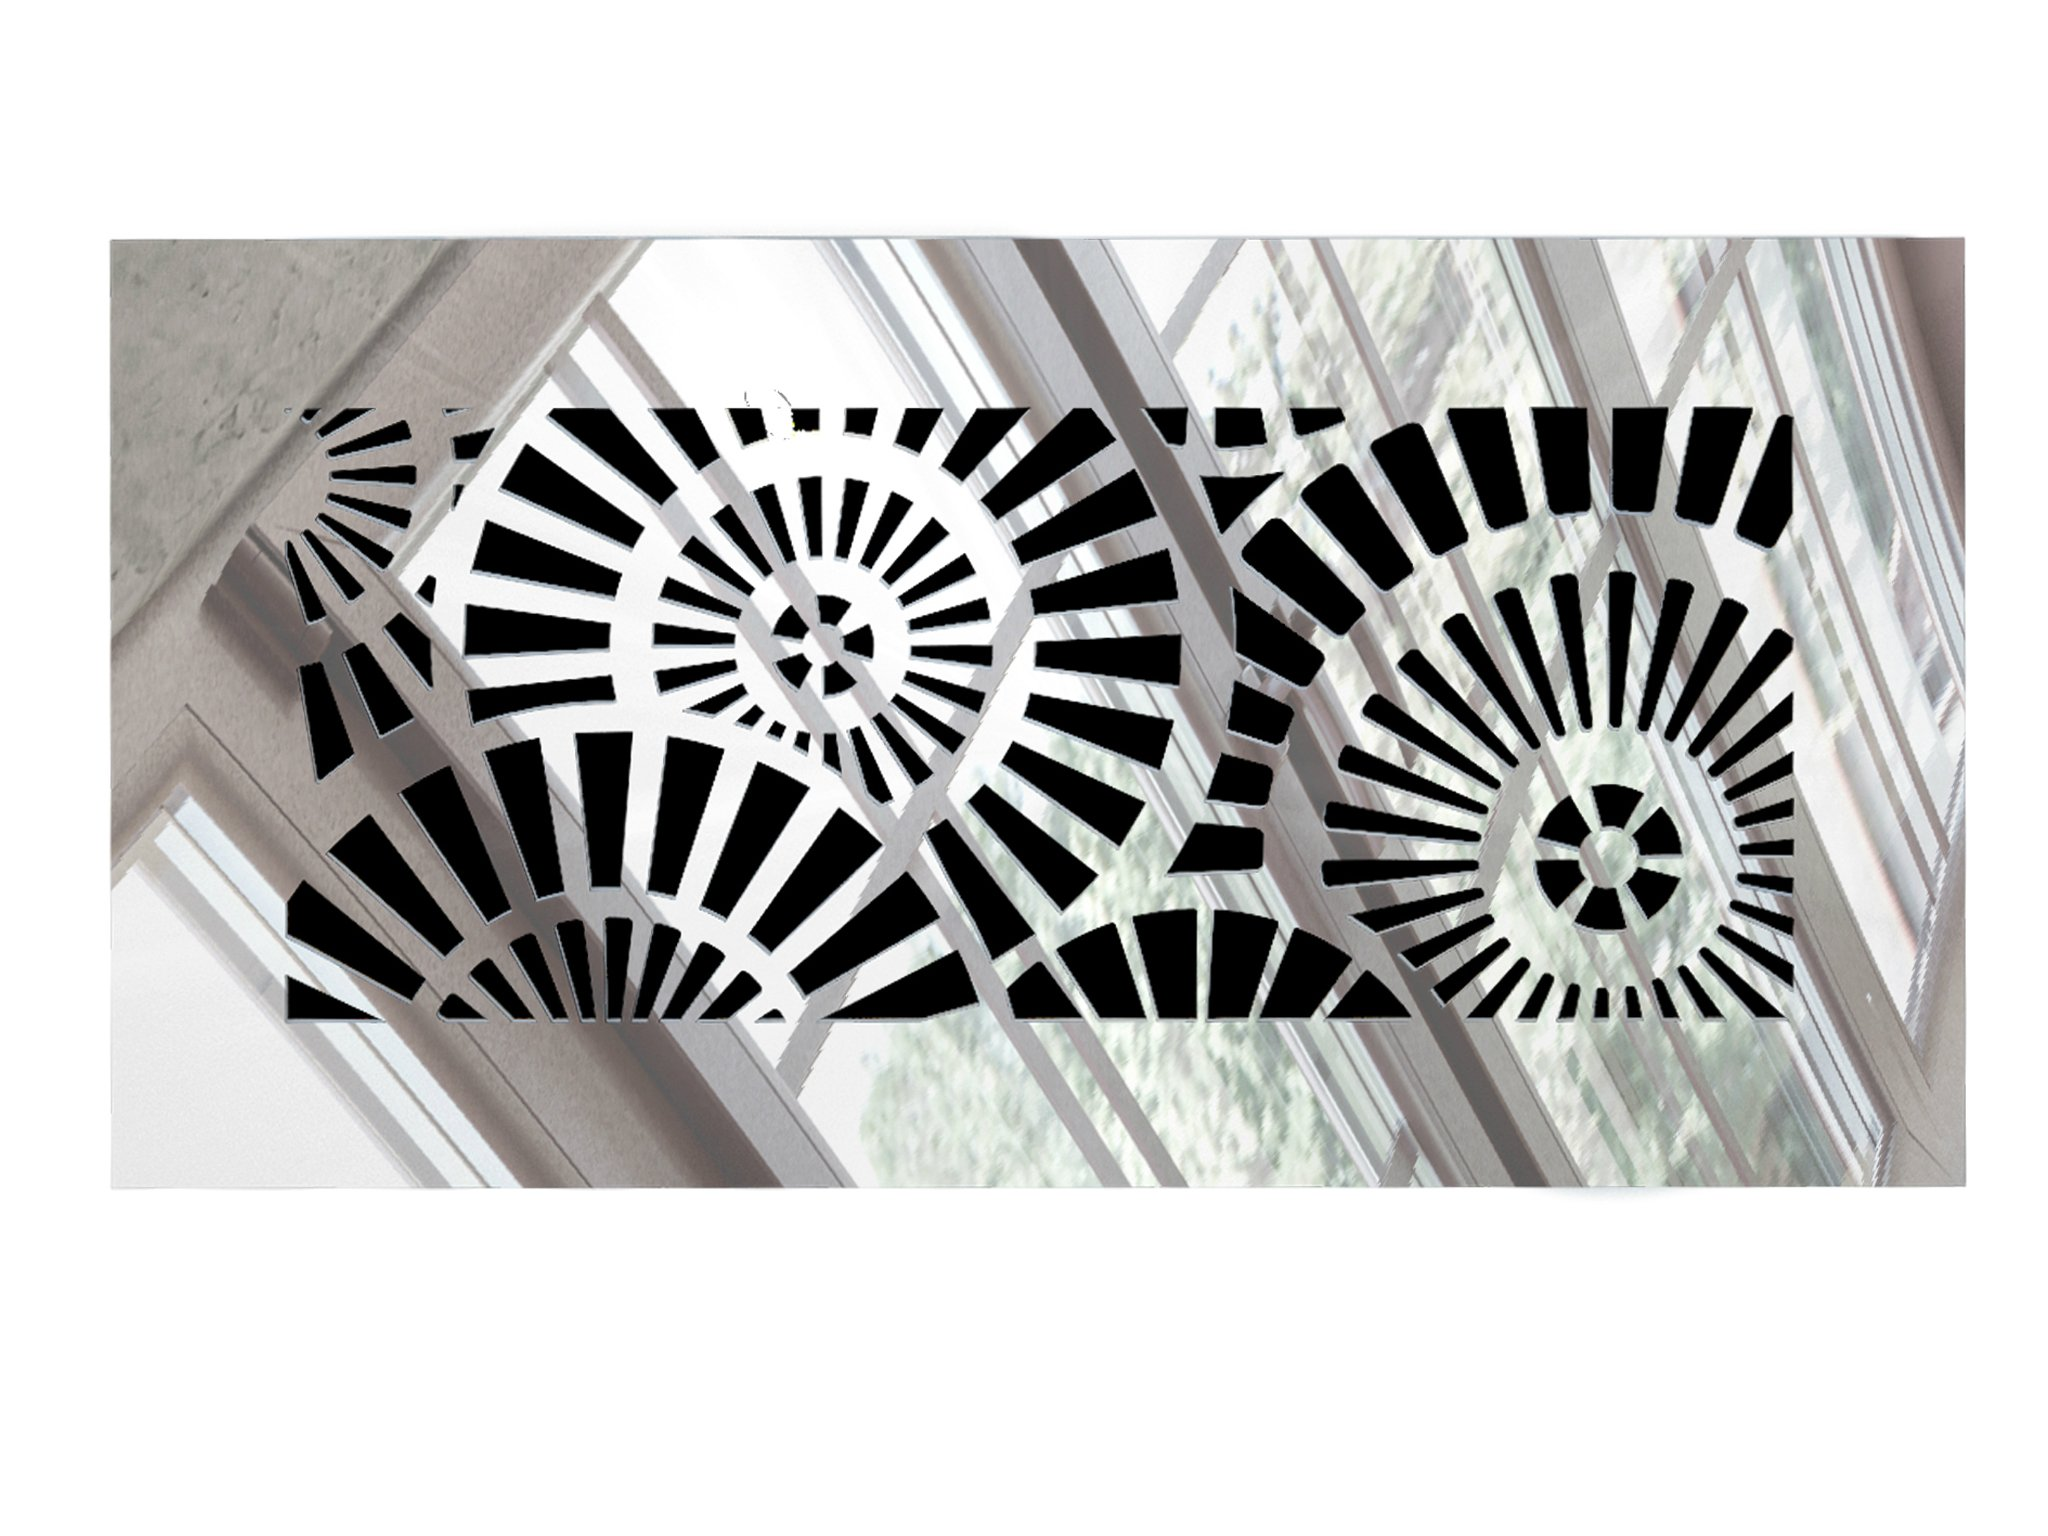 Saba Vent Cover Air Register - Acrylic Fiberglass Grille 10'' x 4'' Duct Opening (12'' x 6'' Overall) Mirror Finish Decorative Register for Walls, Ceilings NOT Floor use, Waterwheel